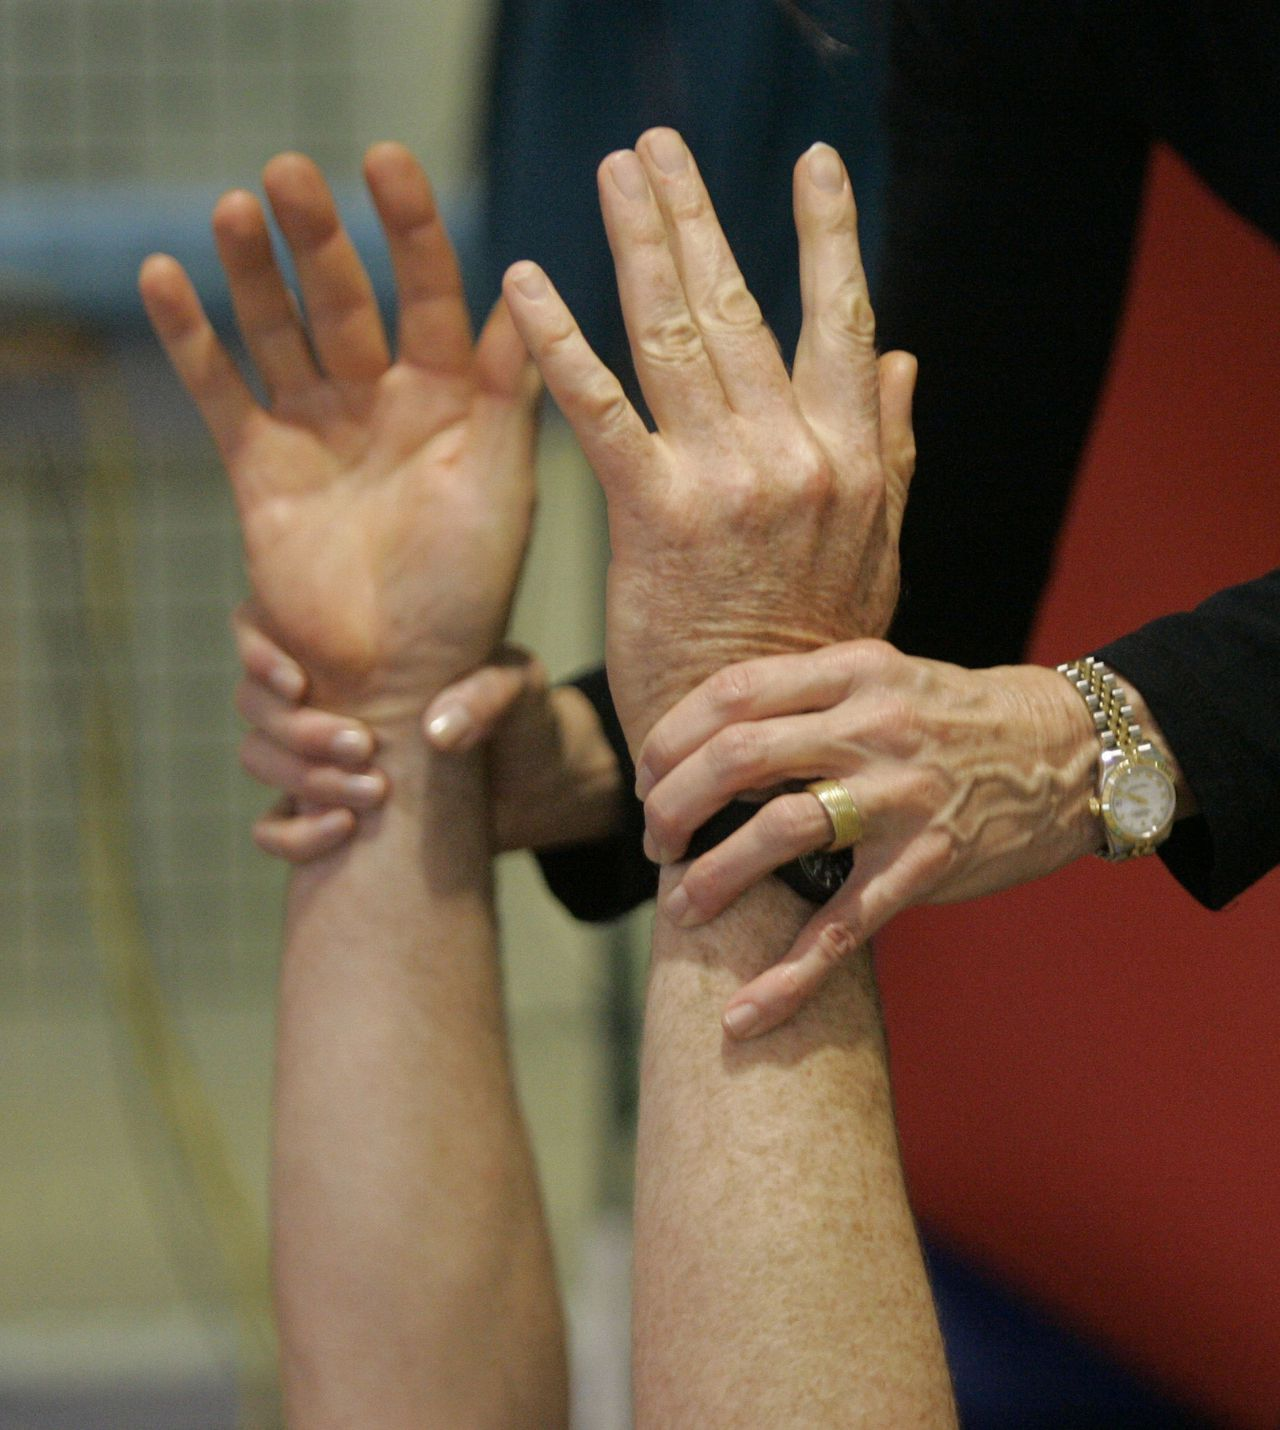 Parkinson-patiënt krijgt bewegingsinstructies tijdens een Pilates-therapie. Foto ap Pilates instructor Bettina Blank, 57, helps Jeffrey Owen, 56, during Pilates class at the Oregon Health and Science University in Portland, Ore., Wednesday, Nov. 22, 2006, in Portland, Ore. The movements in Pilates are controlled sometimes moving the body only inches. But those small motions are making a big difference to some people with Parkinson's disease. (AP Photo/Rick Bowmer)